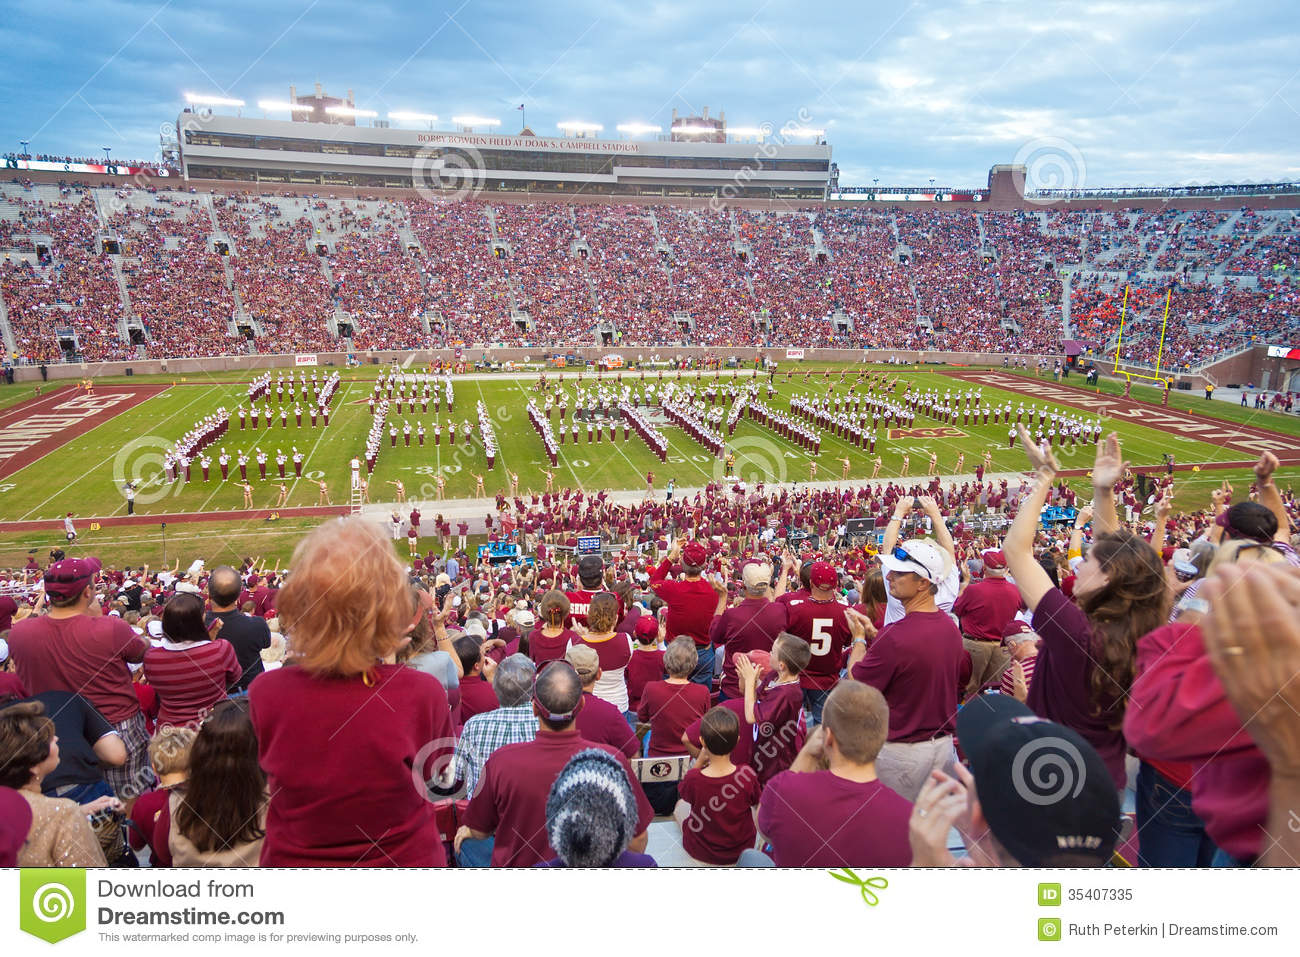 fsu-college-football-tallahassee-fl-nov-florida-state-university-s ... Fsu Football Stadium